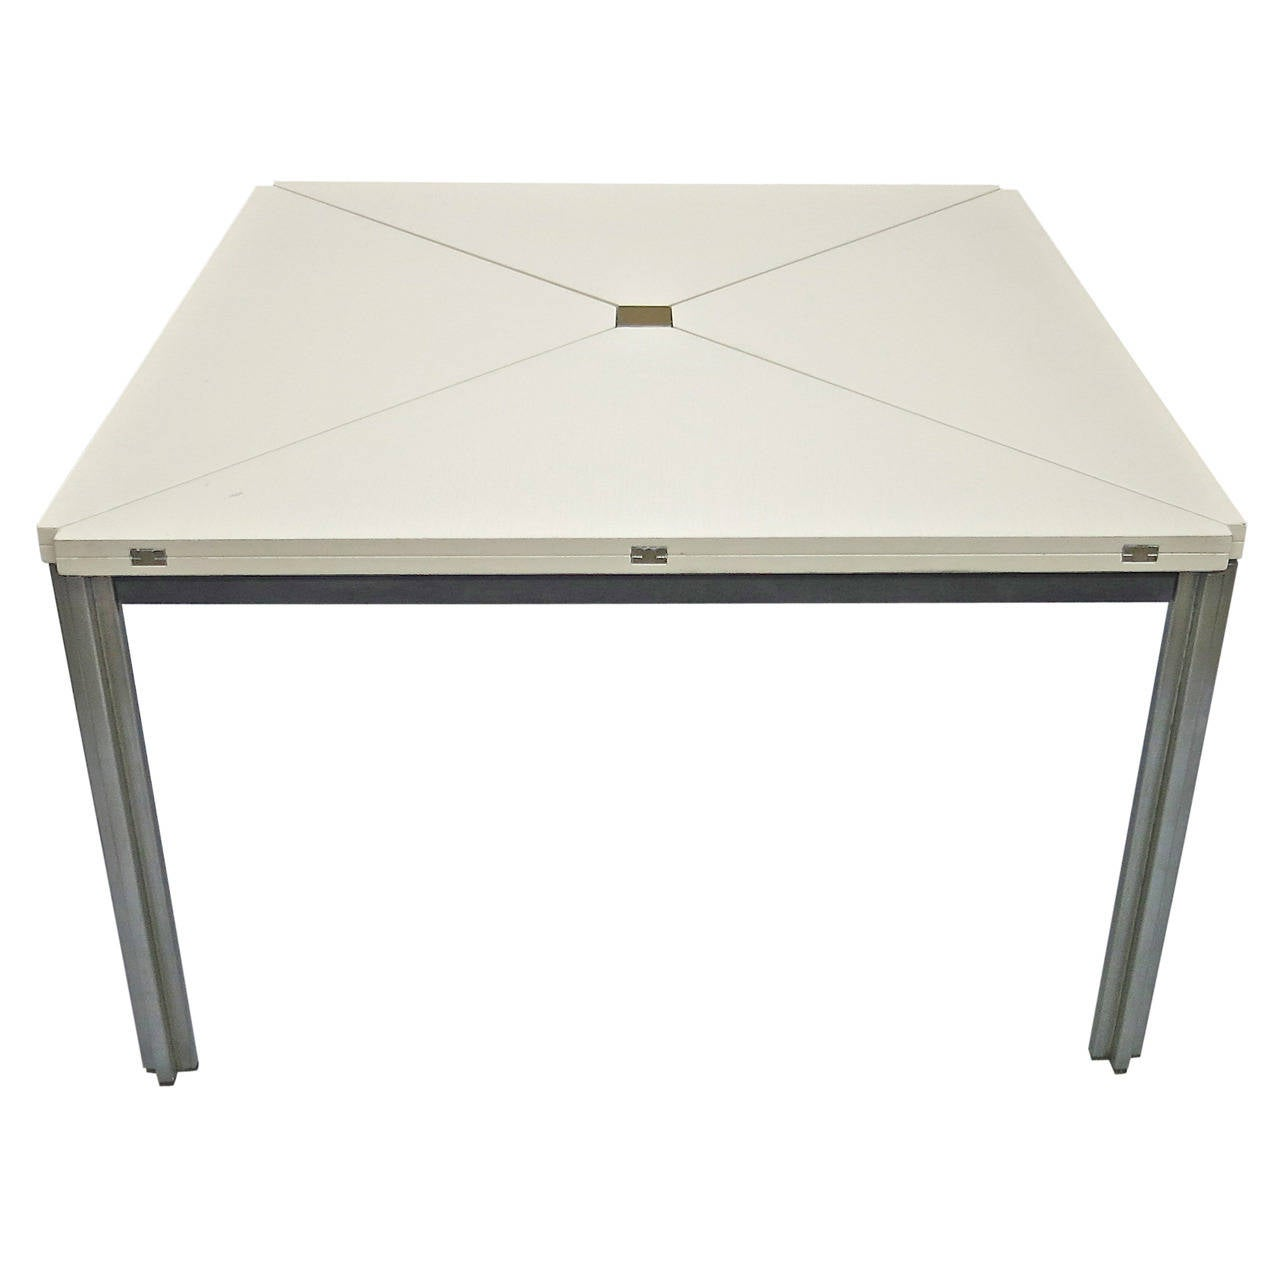 Table T92 Designed in 1960 by Eugenio Gerli and Mario Cristiani for Tecno, Italy